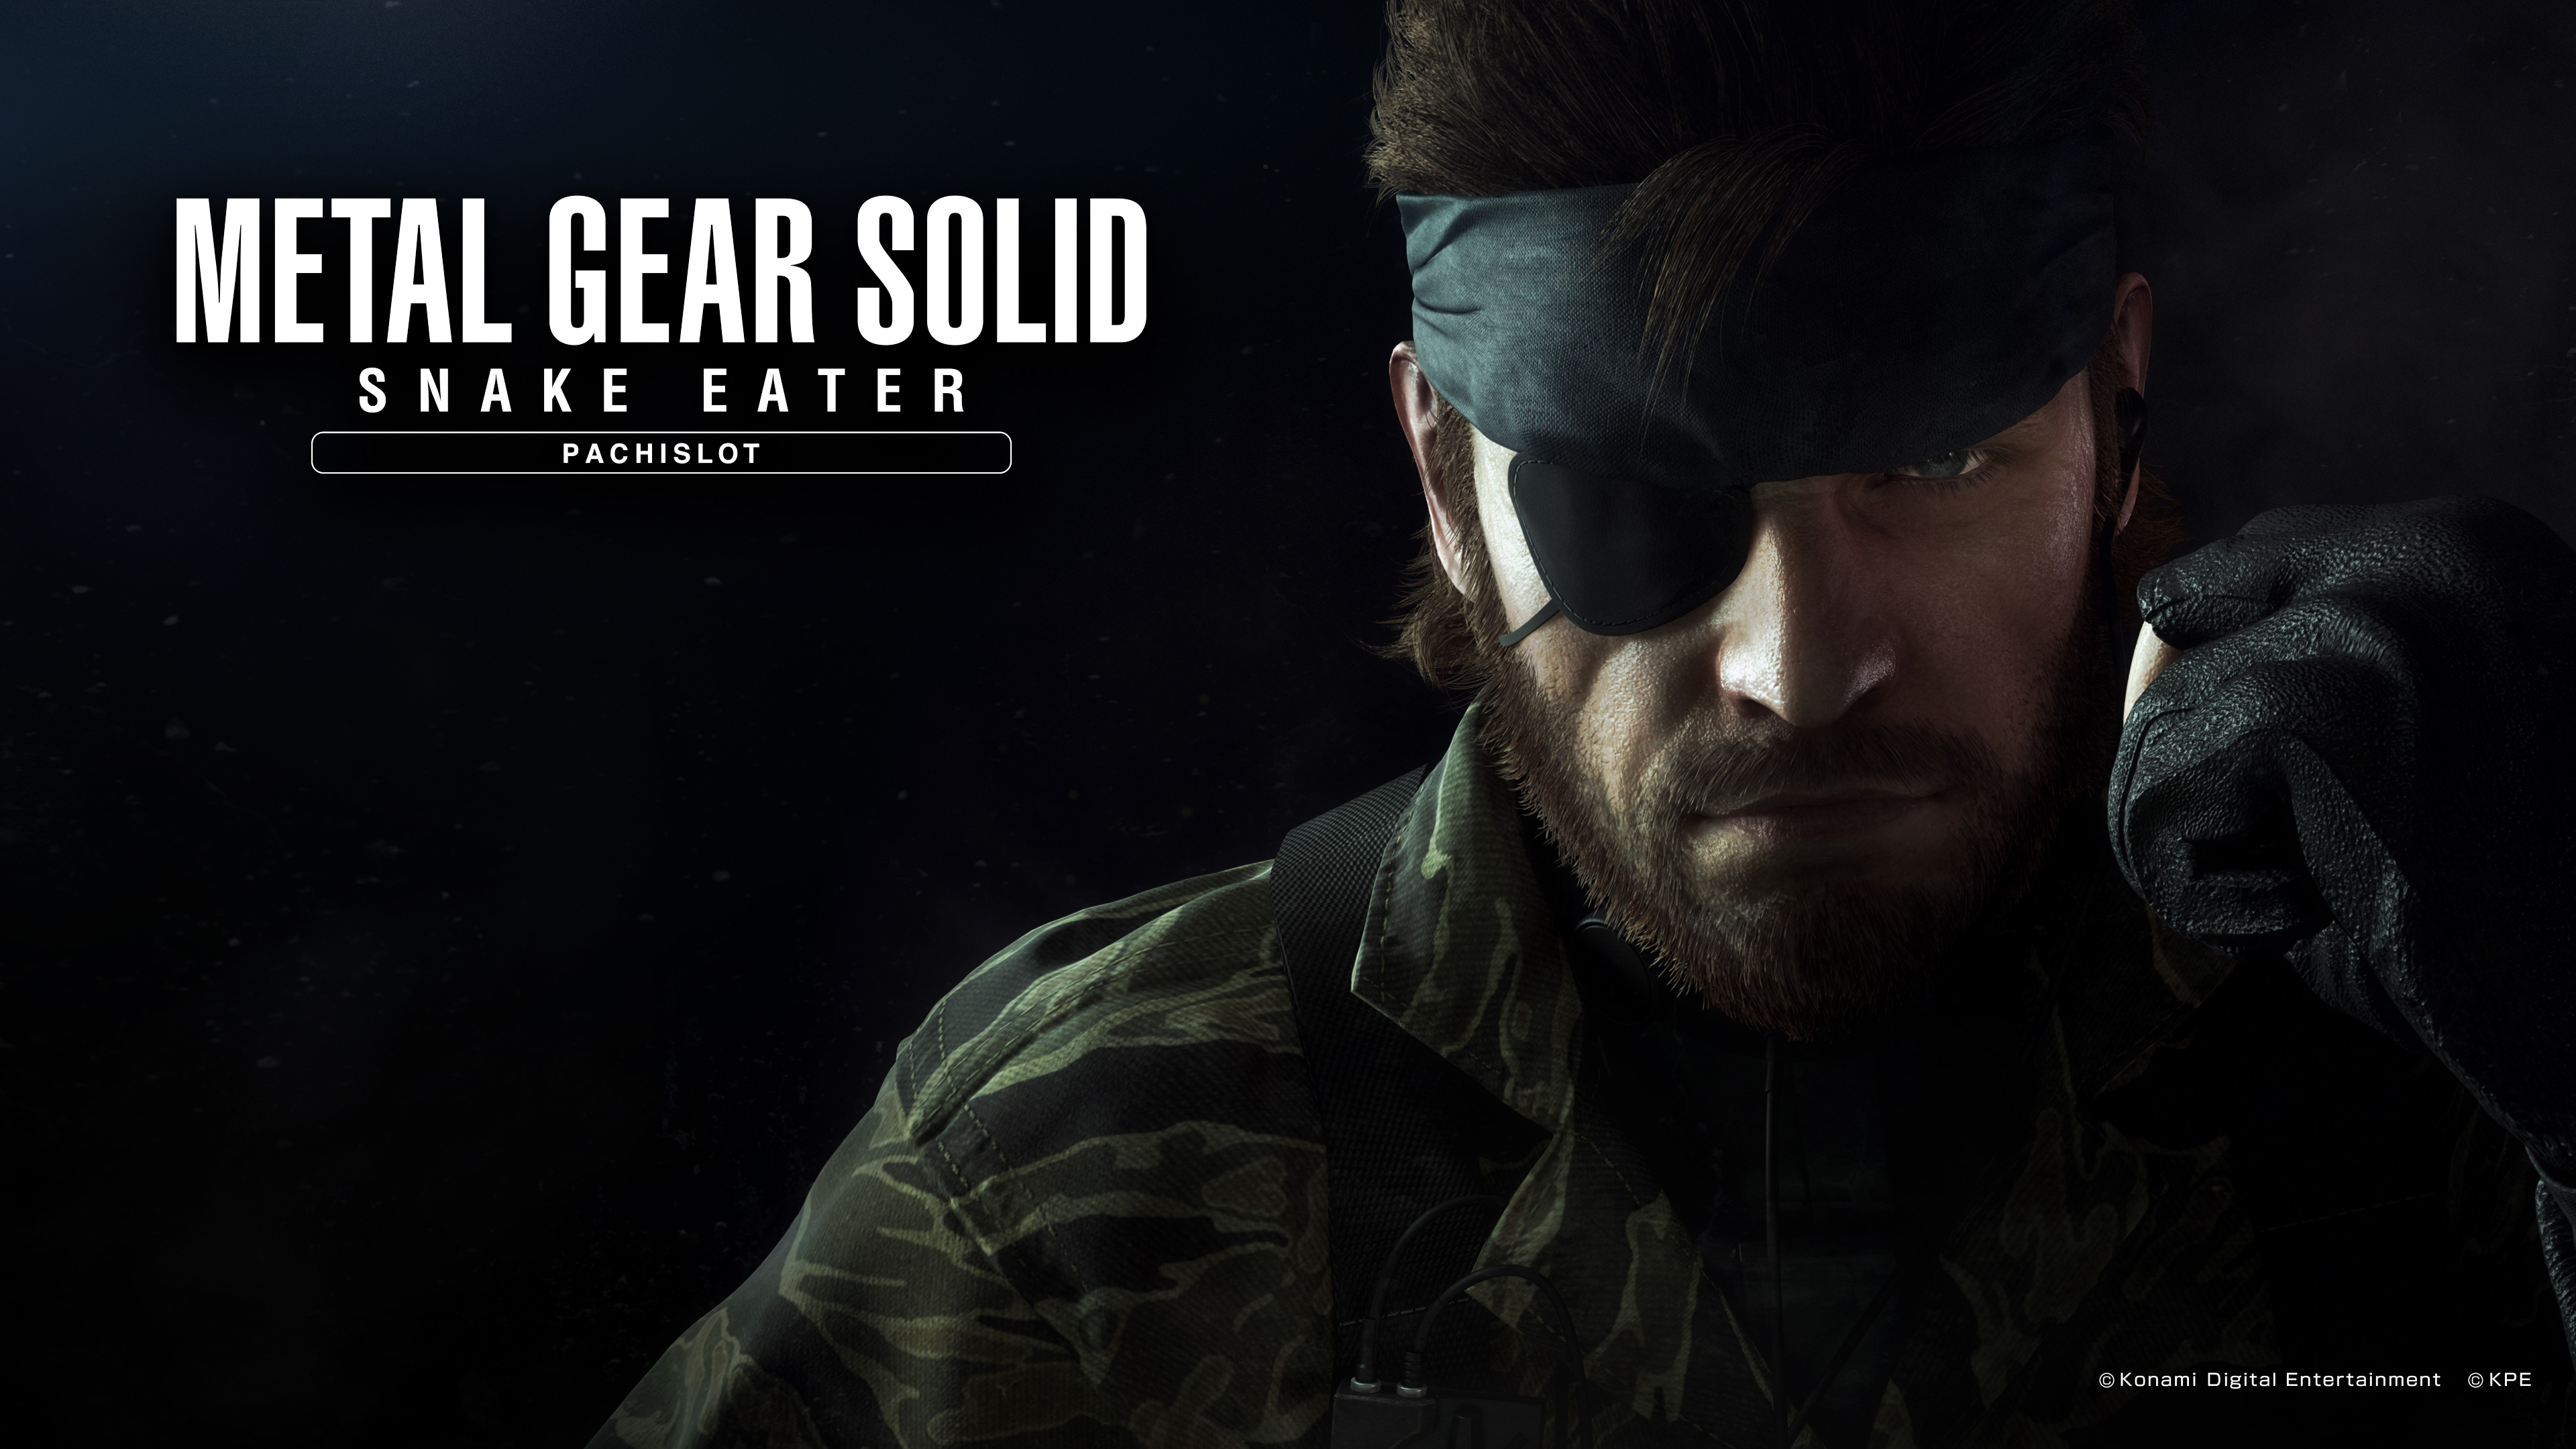 MGS-Snake-Eater-Pachislot-Wallpaper-PC-1